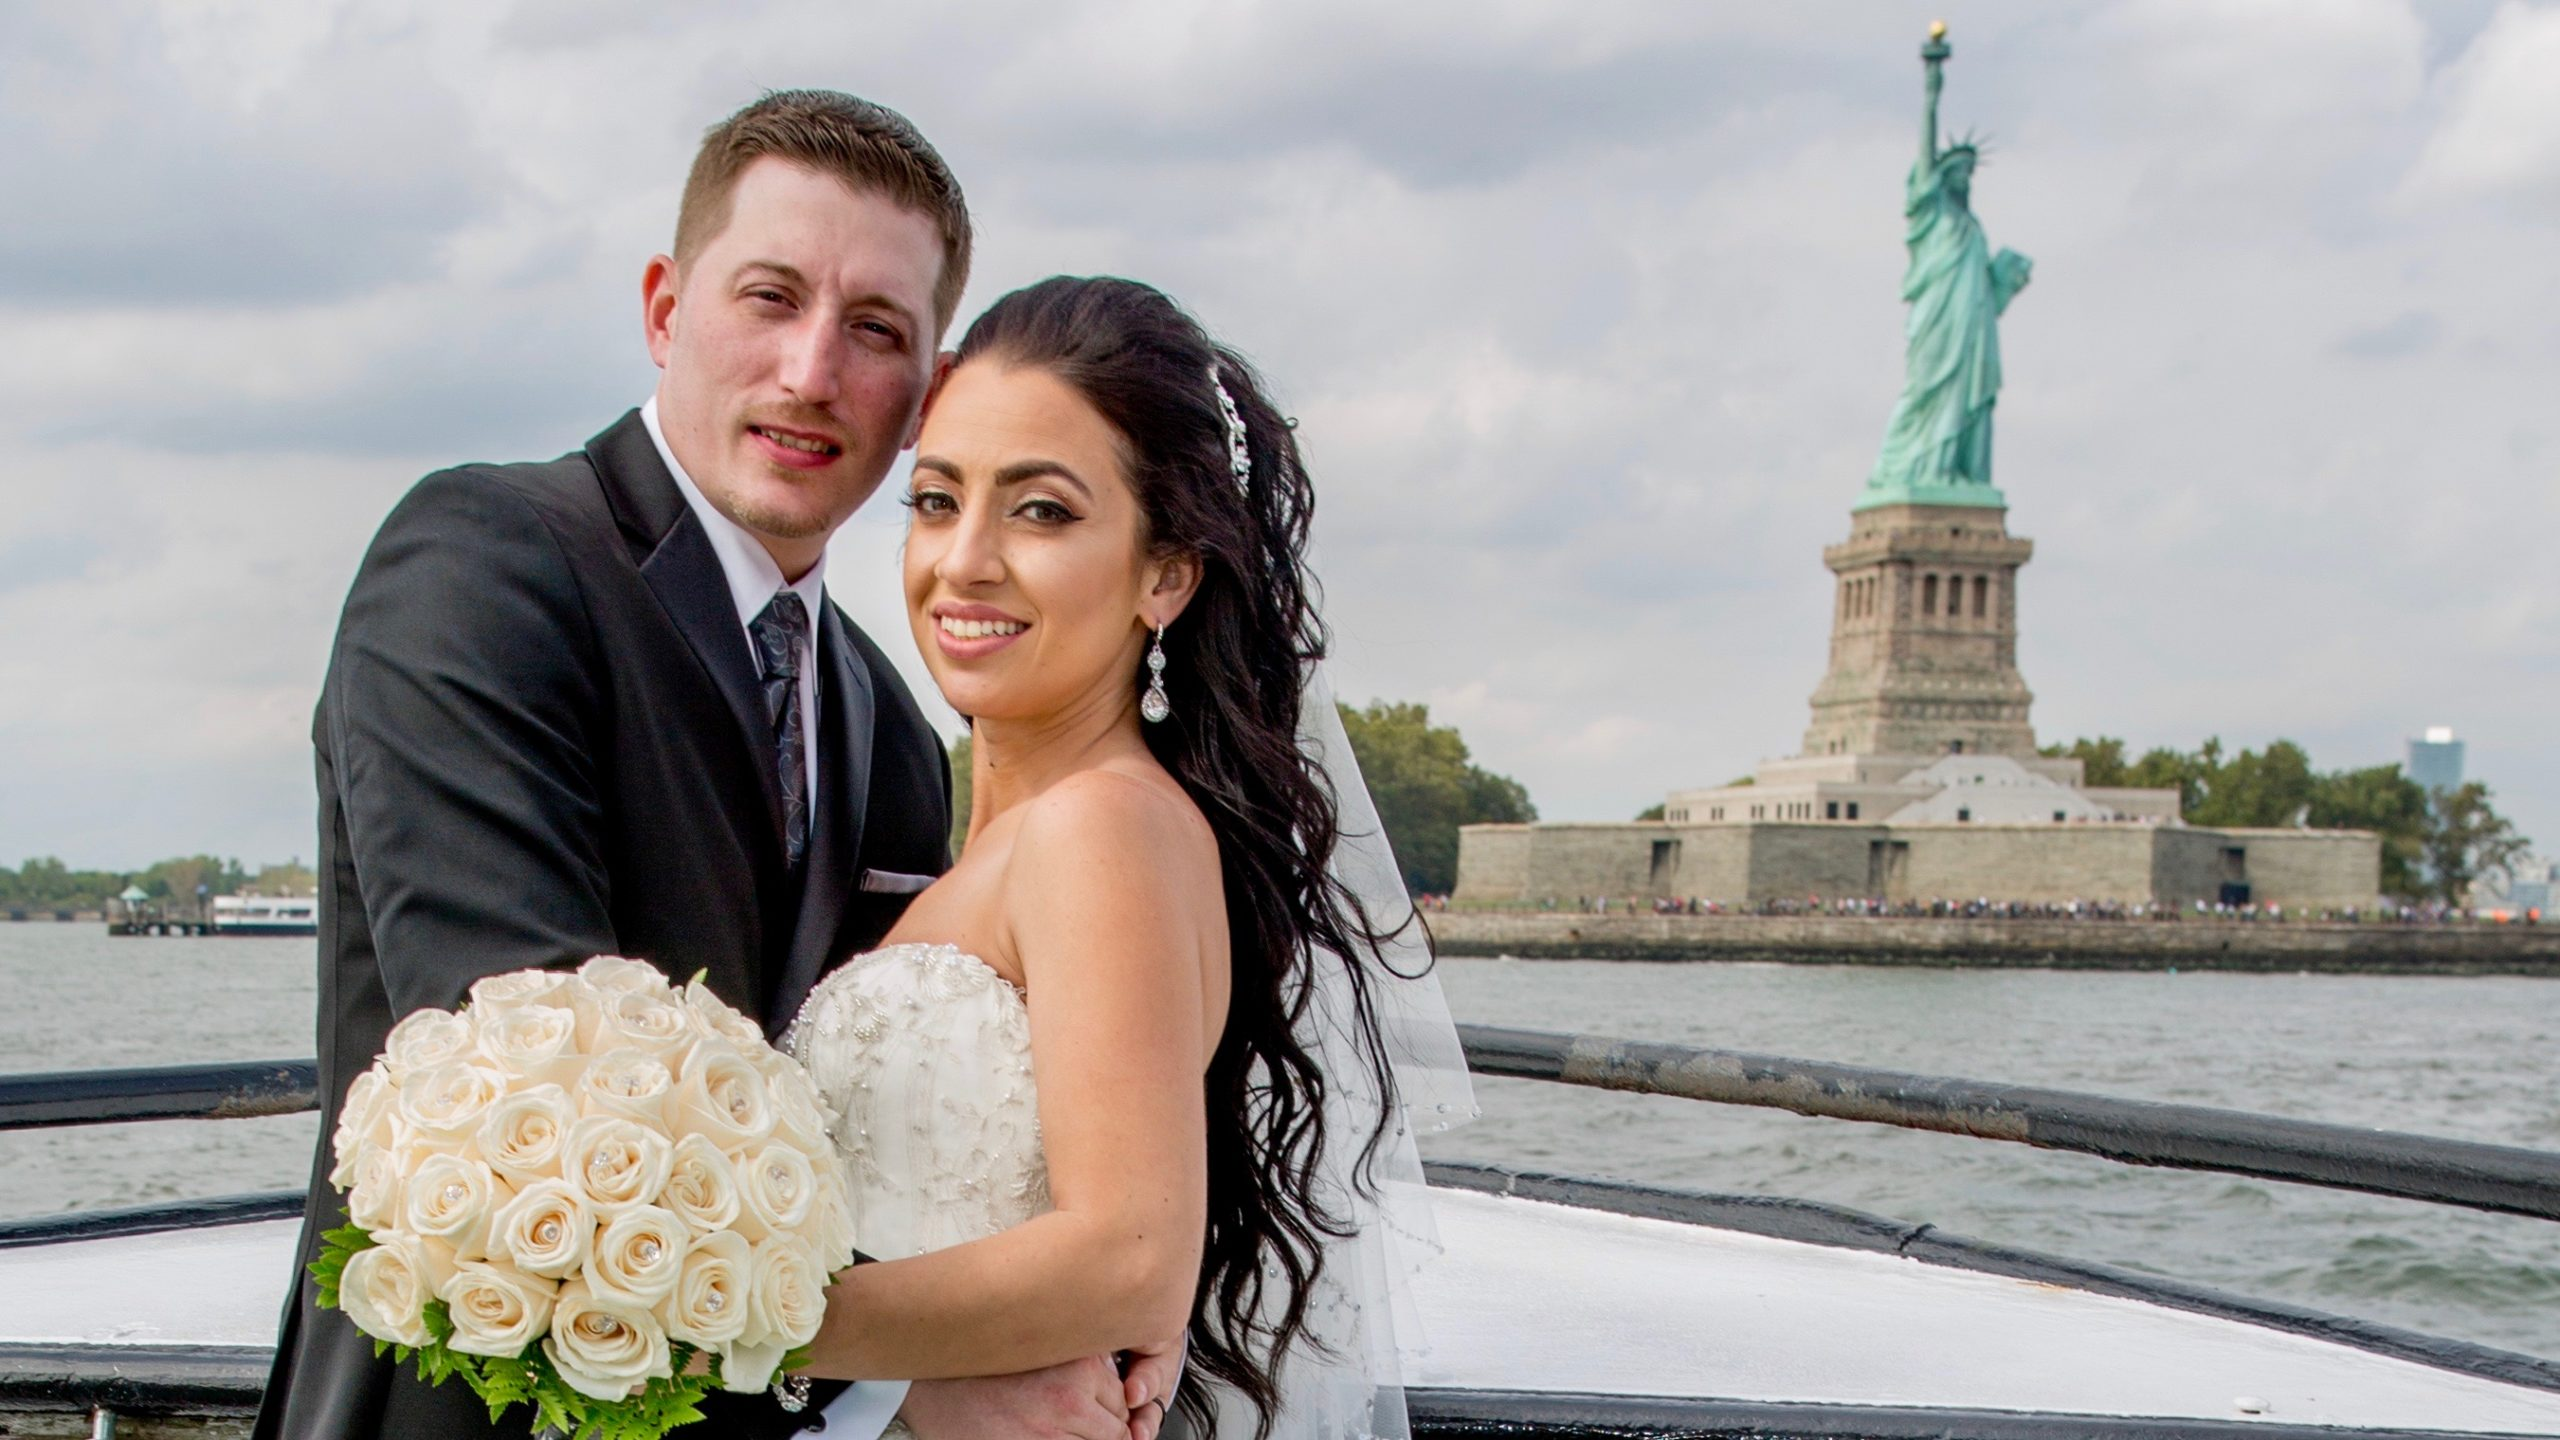 NYC Yacht Weddings